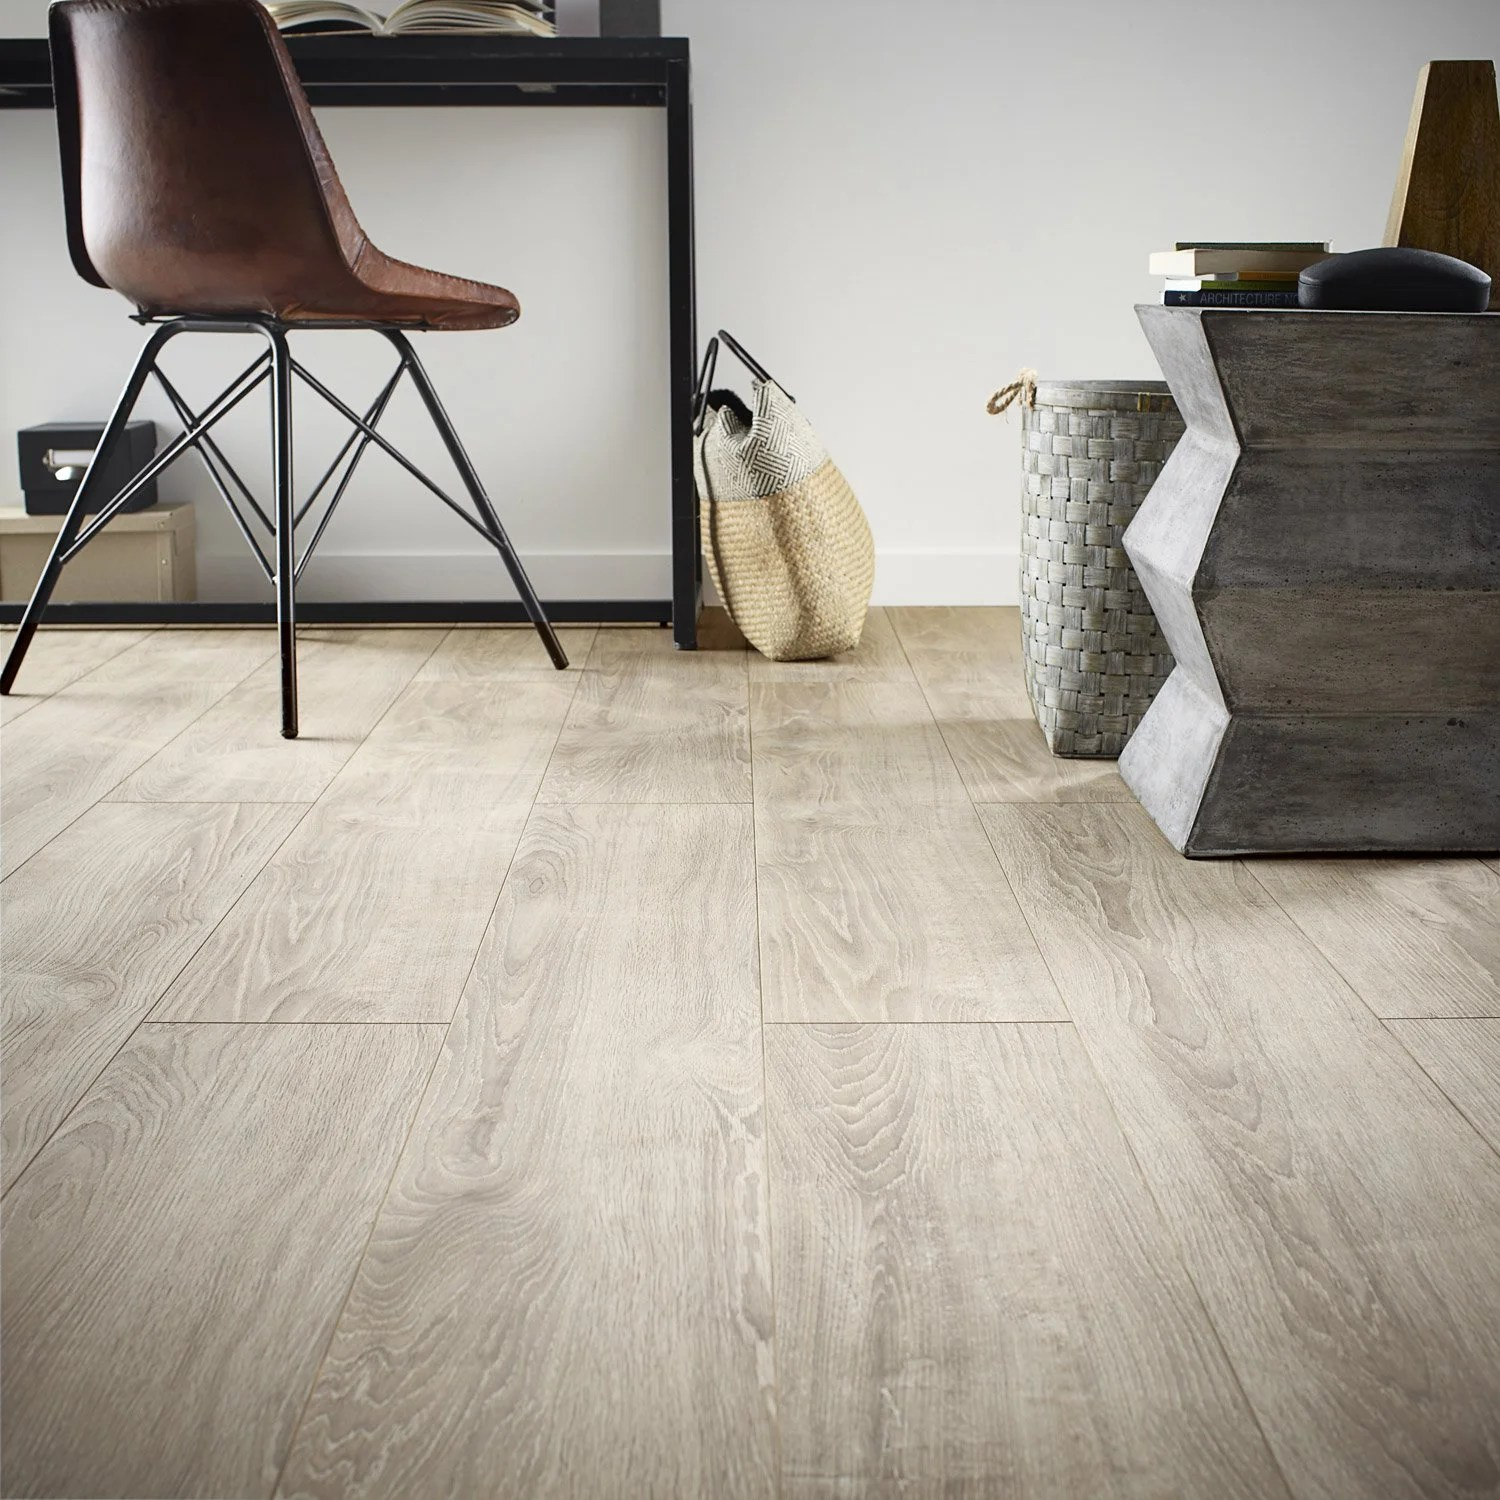 Dimension Lame De Parquet Sol Stratifié Sardegna Ep 12 Mm Artens Plus 12 Leroy Merlin